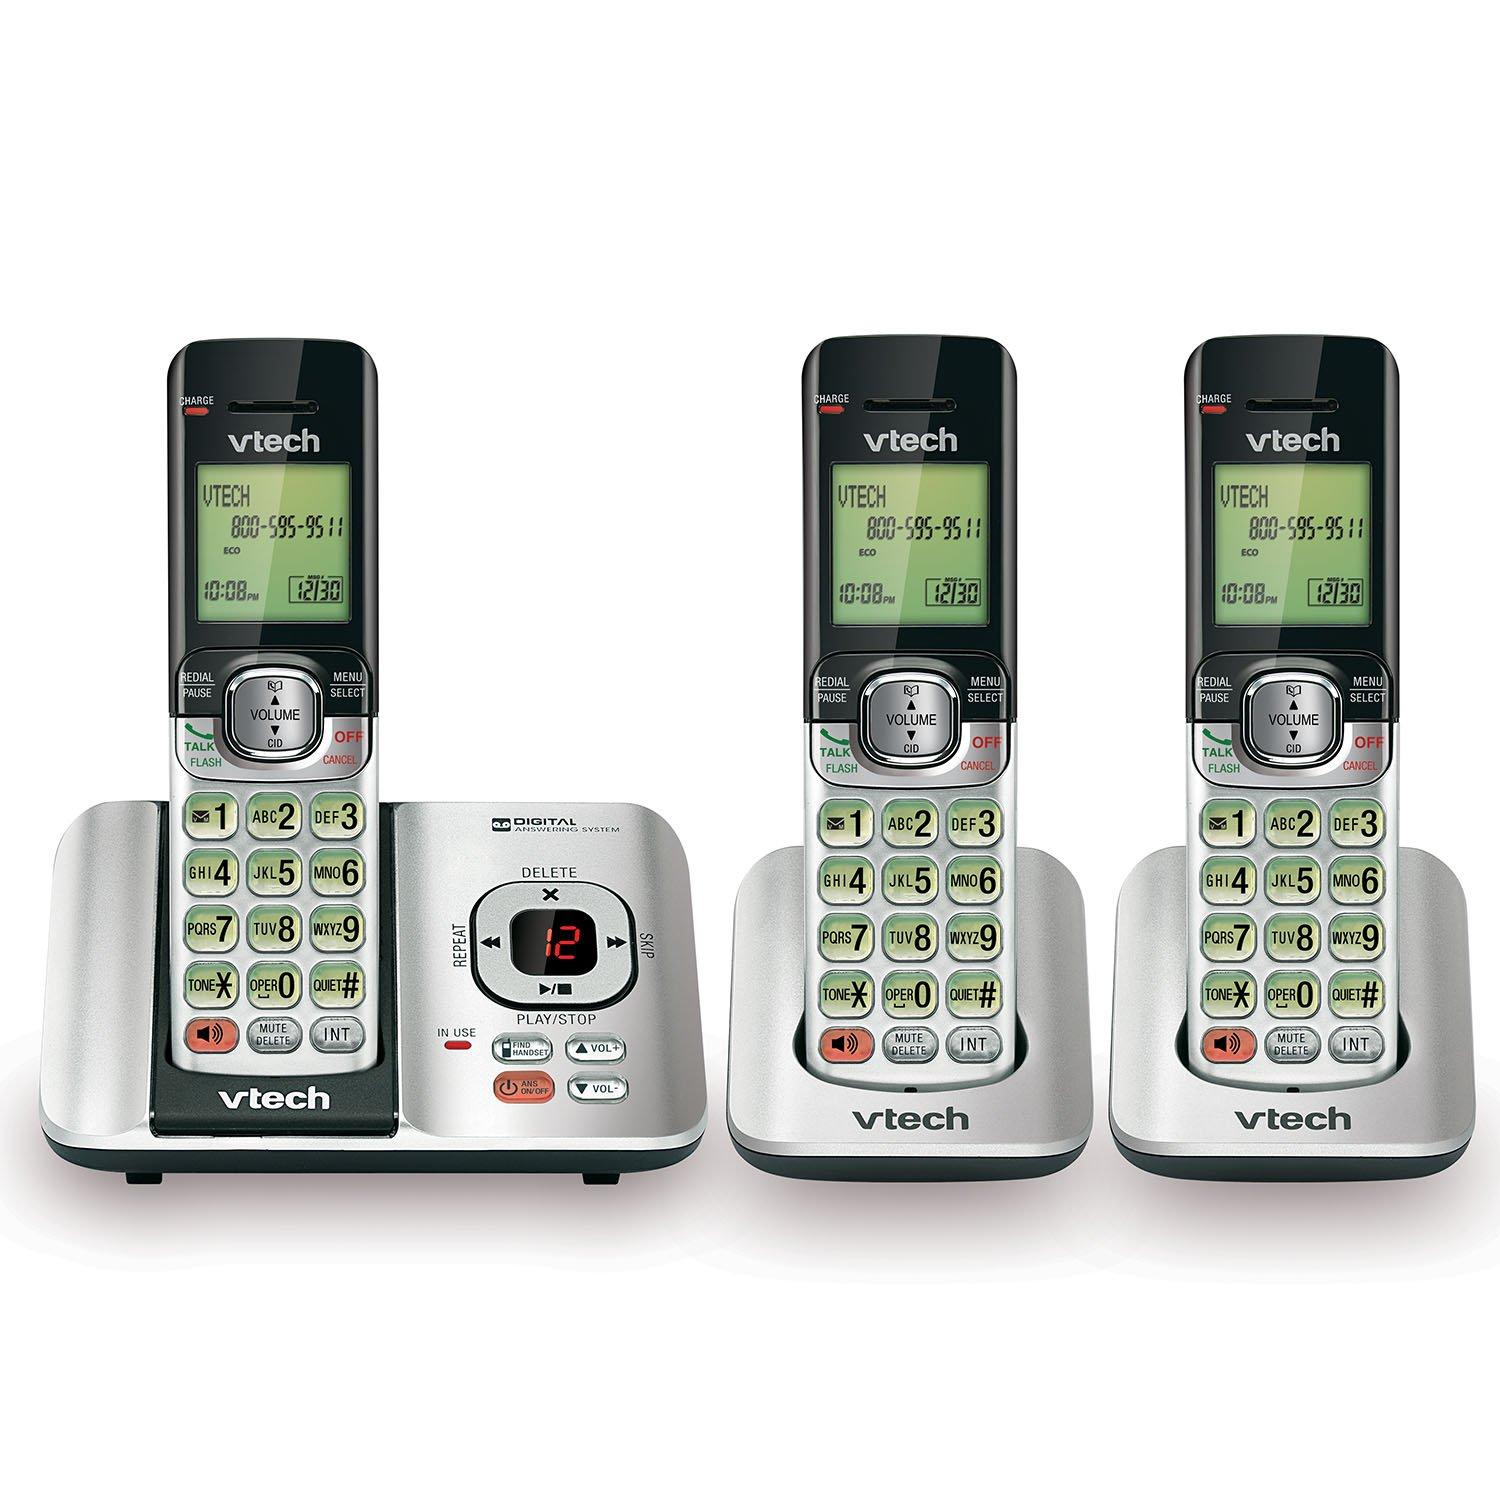 Red VTech CS6529-26 DECT 6.0 Phone Answering System with Caller ID//Call Waiting 2 Cordless Handsets